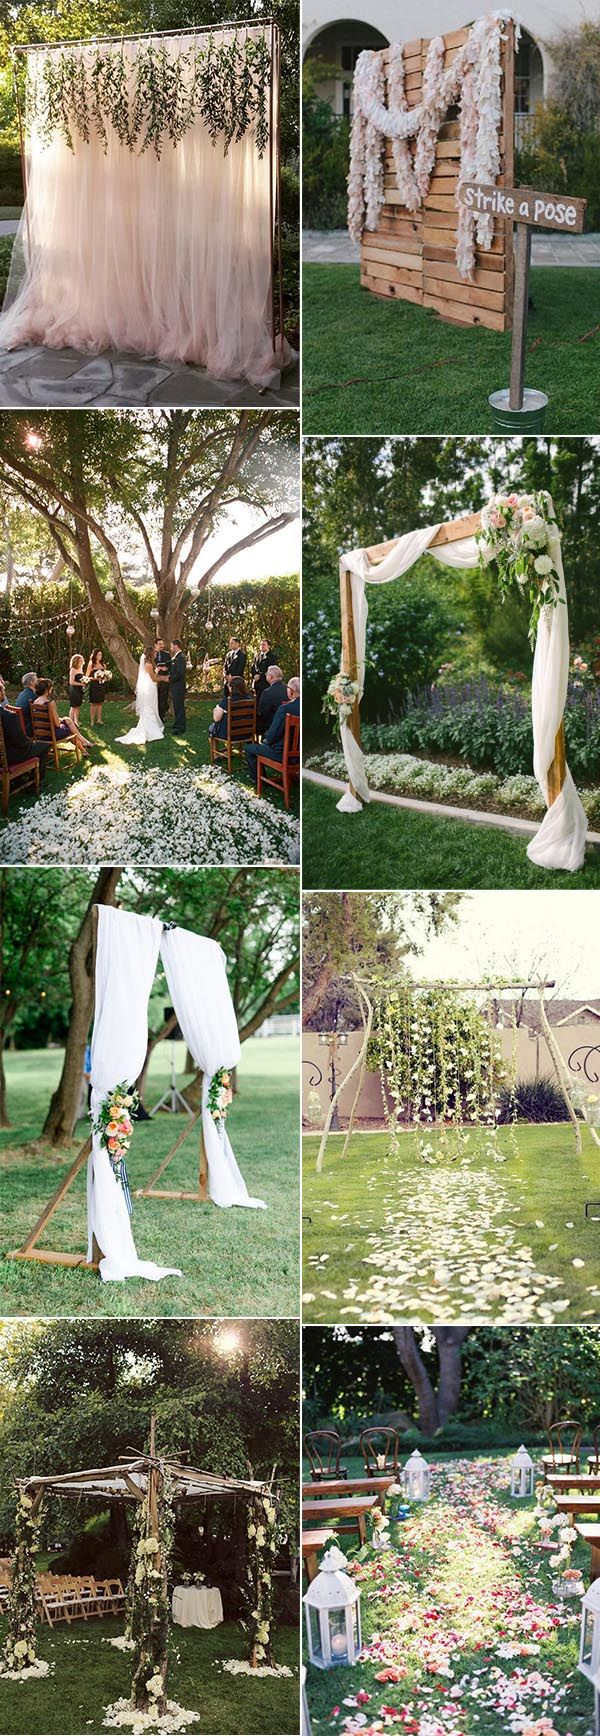 30 Sweet Ideas For Intimate Backyard Outdoor Weddings -  Elegantweddinginvites.com Blog | Outdoor wedding, Backyard wedding, Wedding  altars